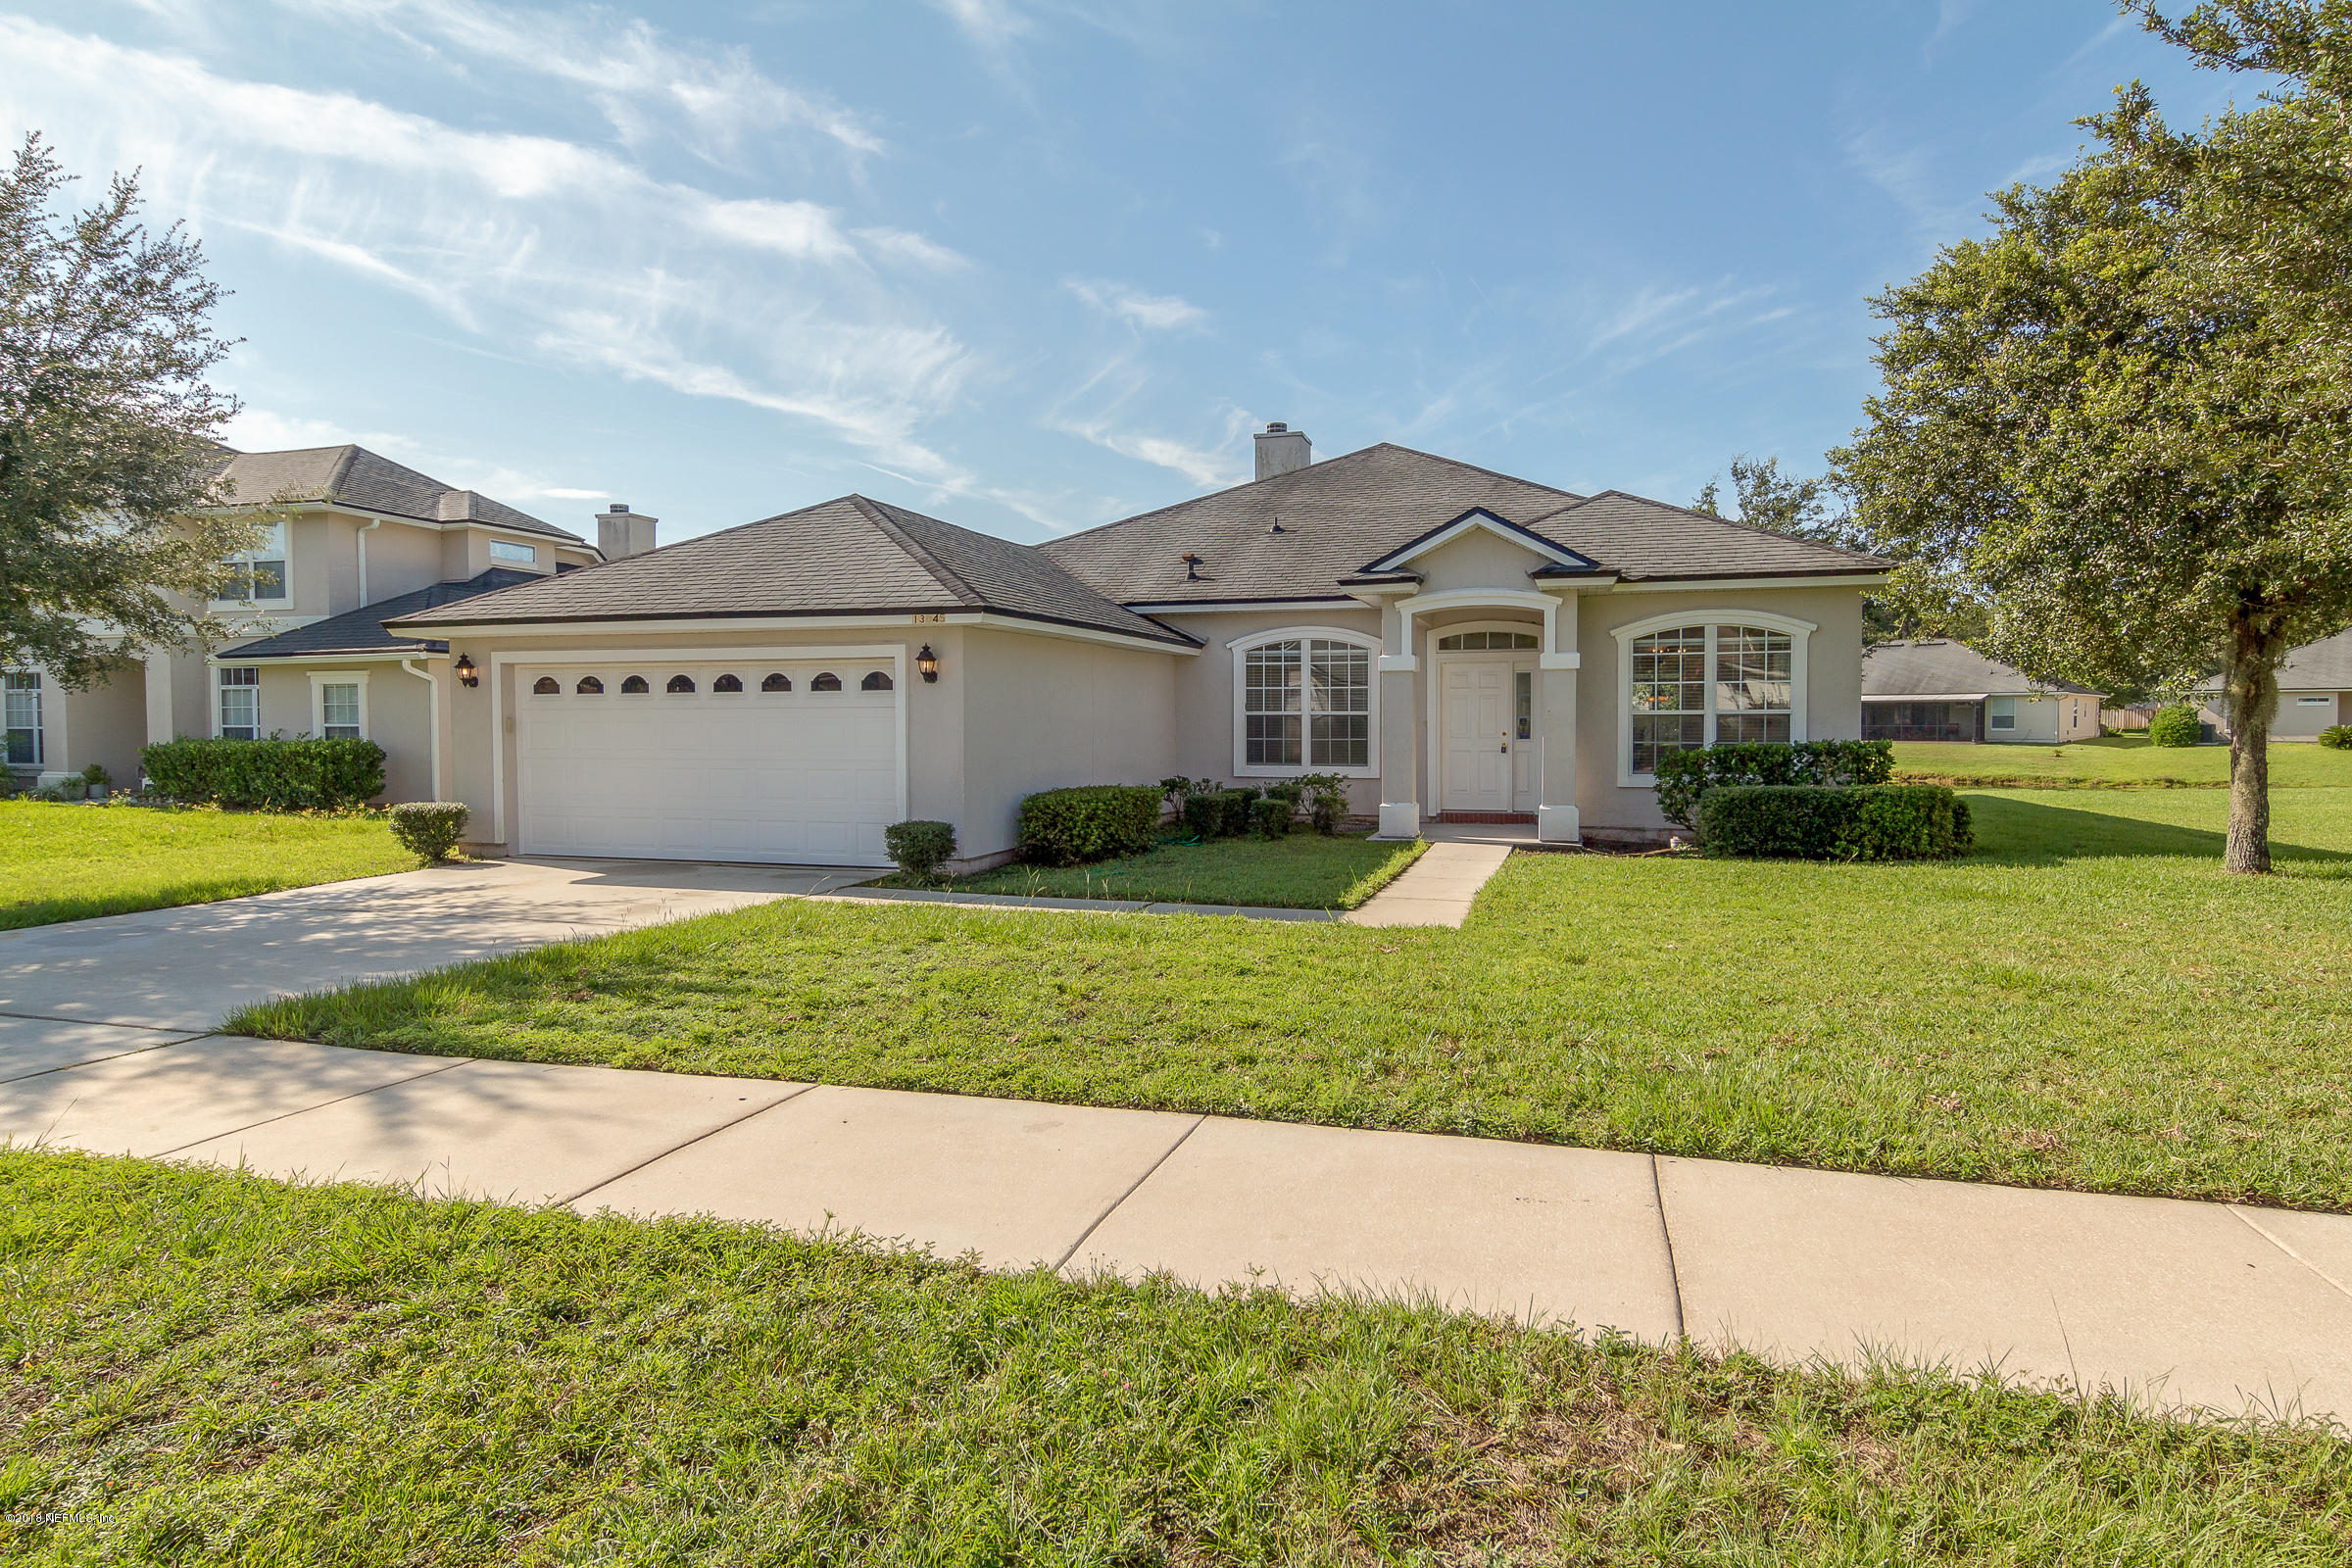 13045 NOTRE DAME, JACKSONVILLE, FLORIDA 32218, 4 Bedrooms Bedrooms, ,2 BathroomsBathrooms,Residential - single family,For sale,NOTRE DAME,952763